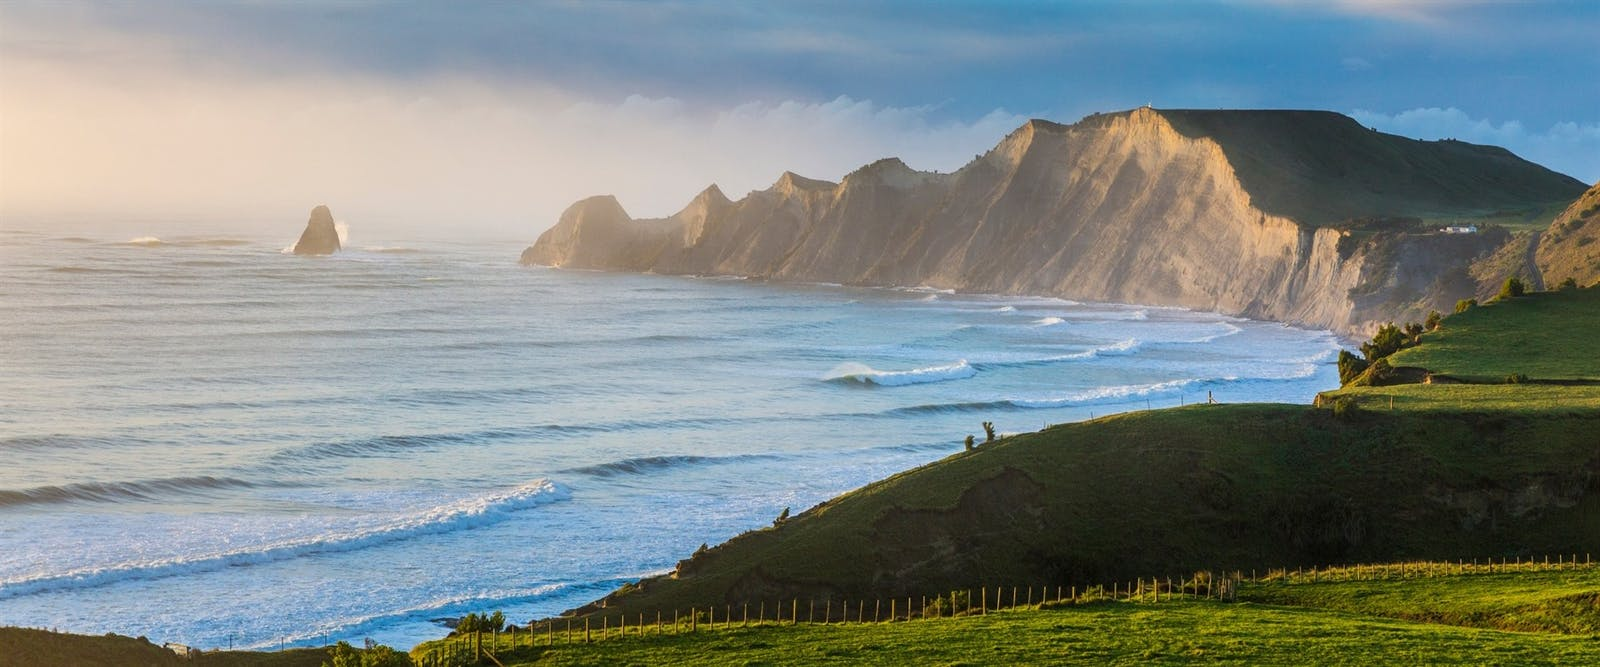 views from the farm at cape kidnappers hawkes bay